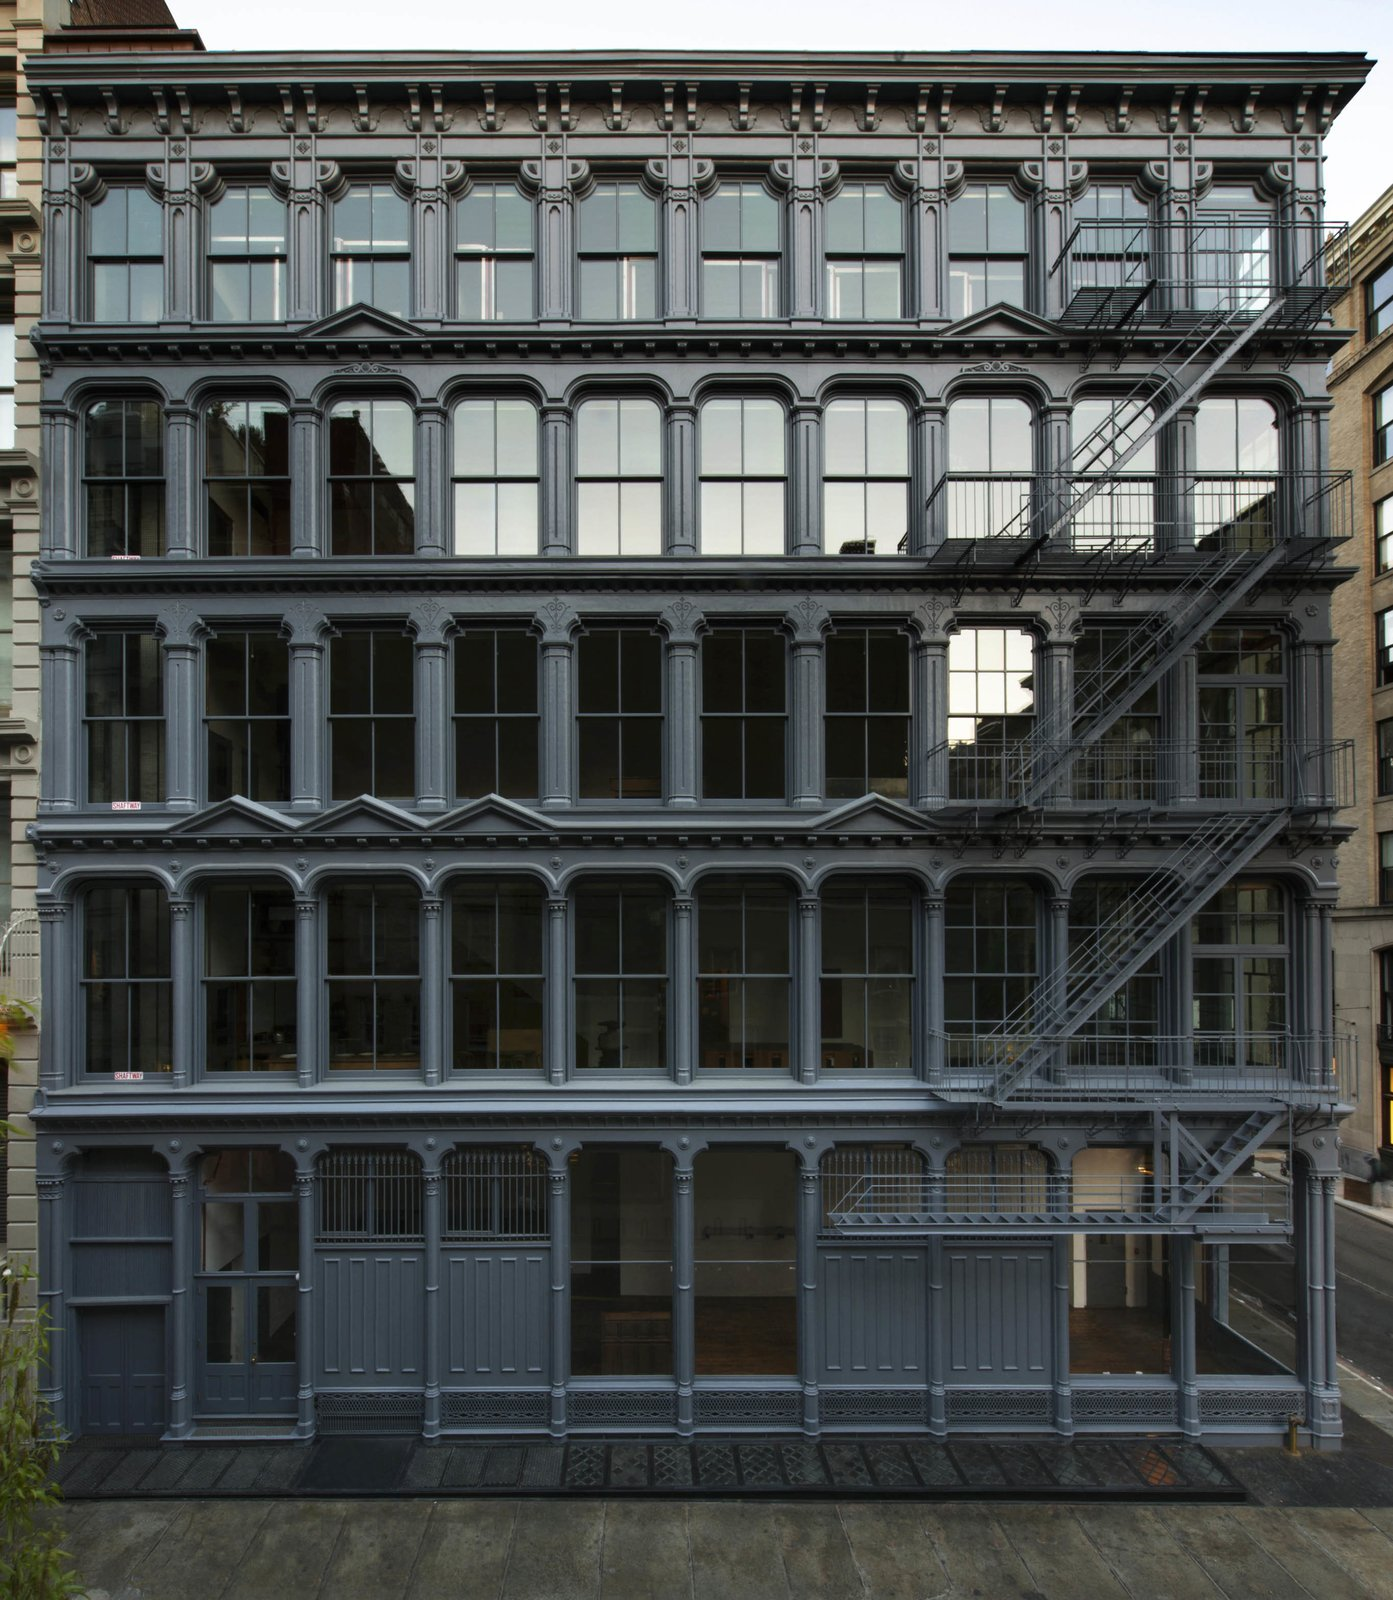 The Donald Judd Home and Studio in SoHo, which recently reopened following a resotration by Architecture Research Office and Walter B. Melvin Architects, will be the Building of the Day on October 20.  buildings from Archtober: A Monthlong Celebration of Design and Architecture Returns to New York City